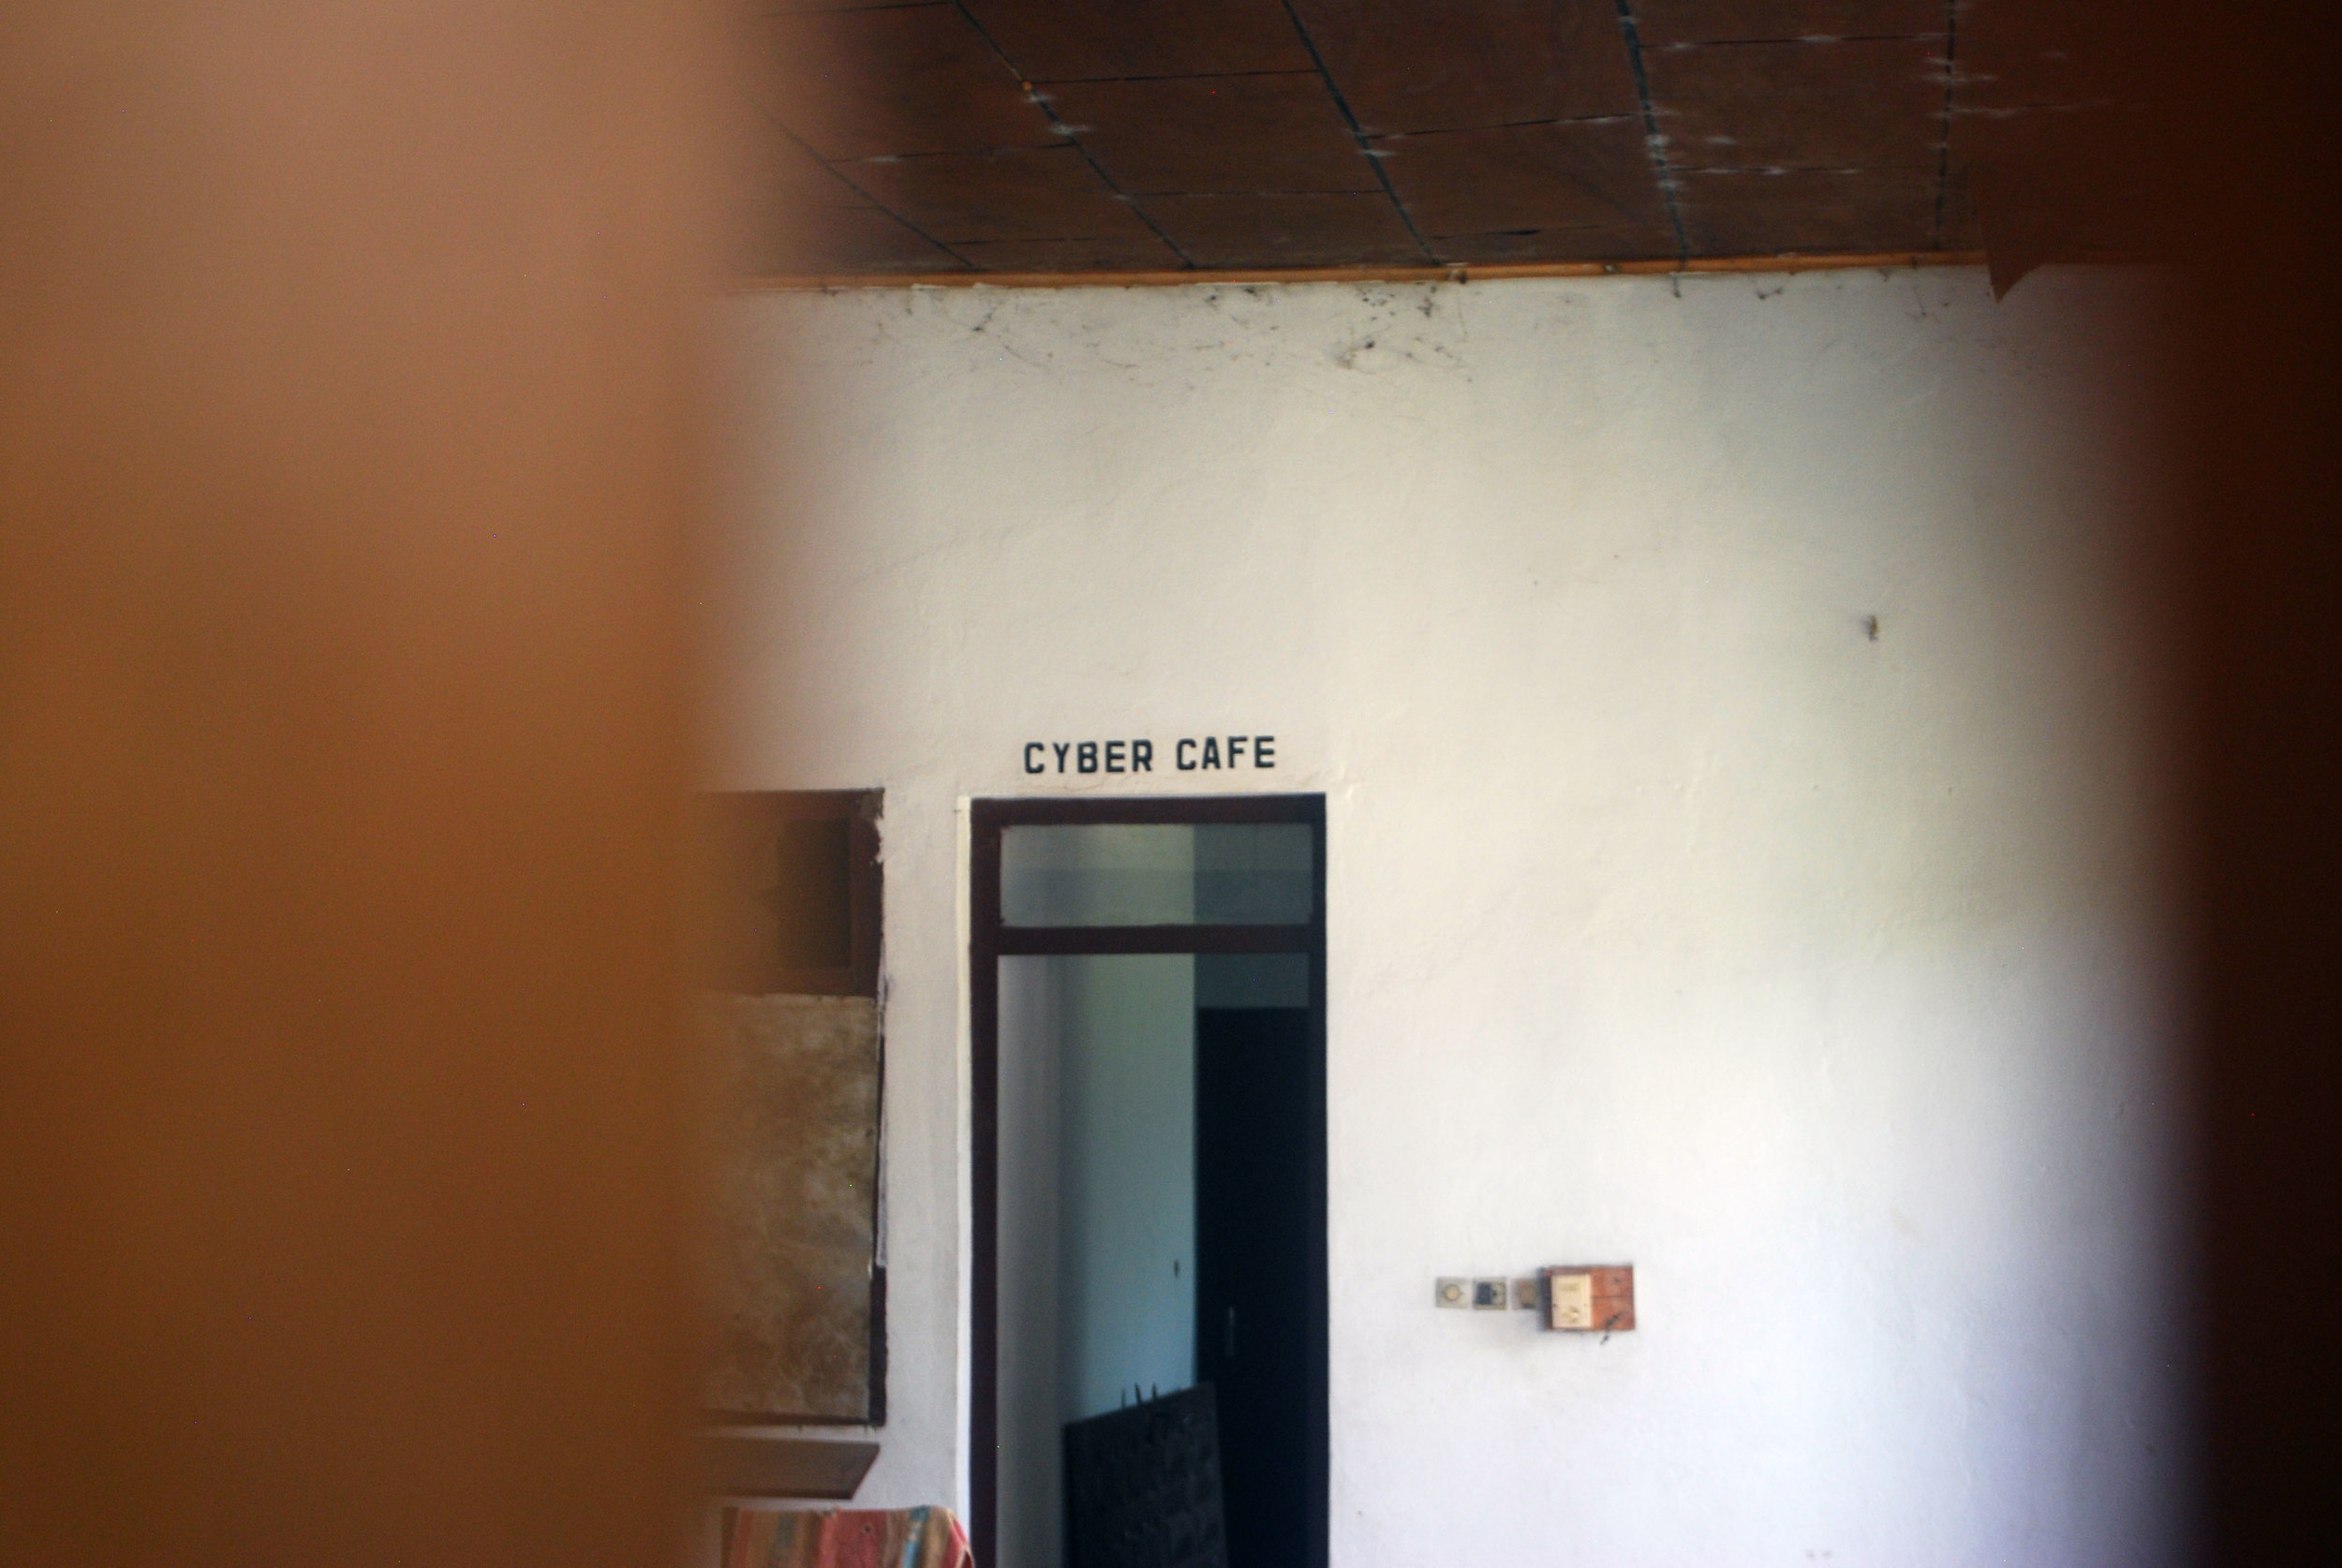 A picture of the Cyber Café entrance, taken through the slats of a boarded up window in the abandoned luxury hotel at Boali Falls.